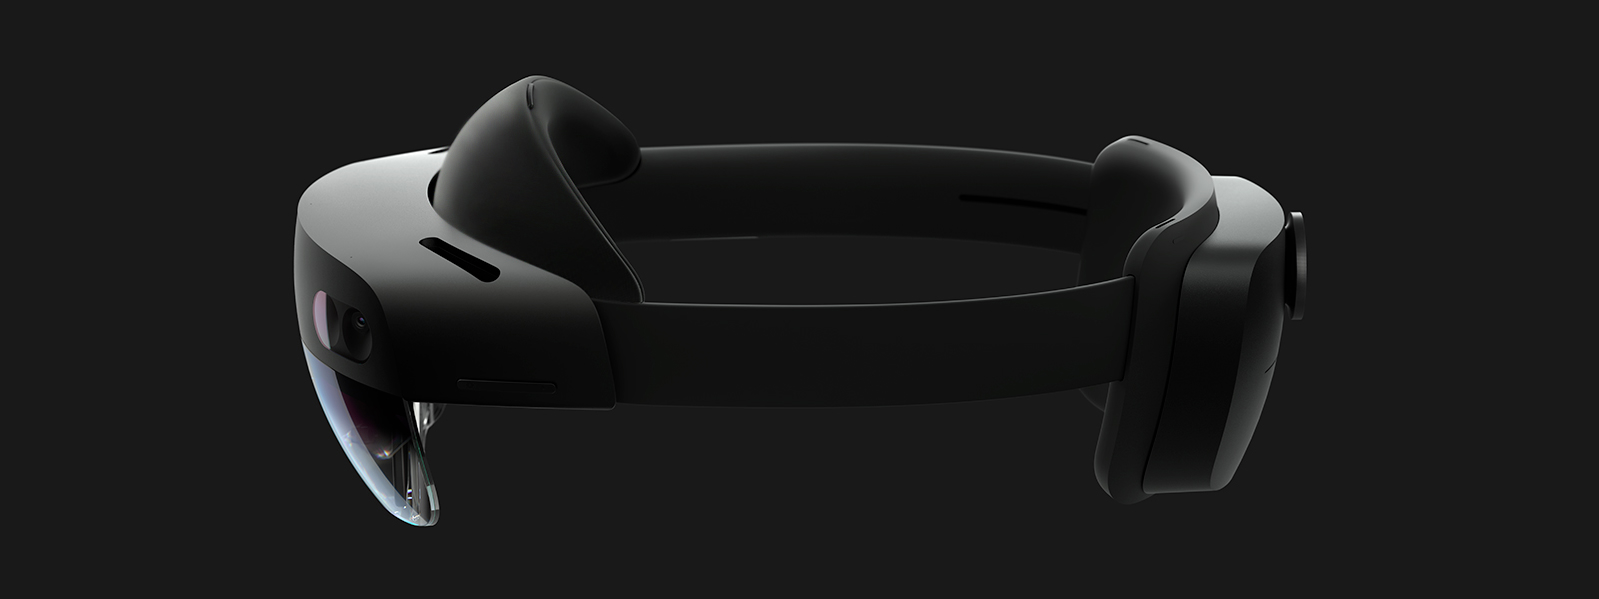 Picture of HoloLens 2